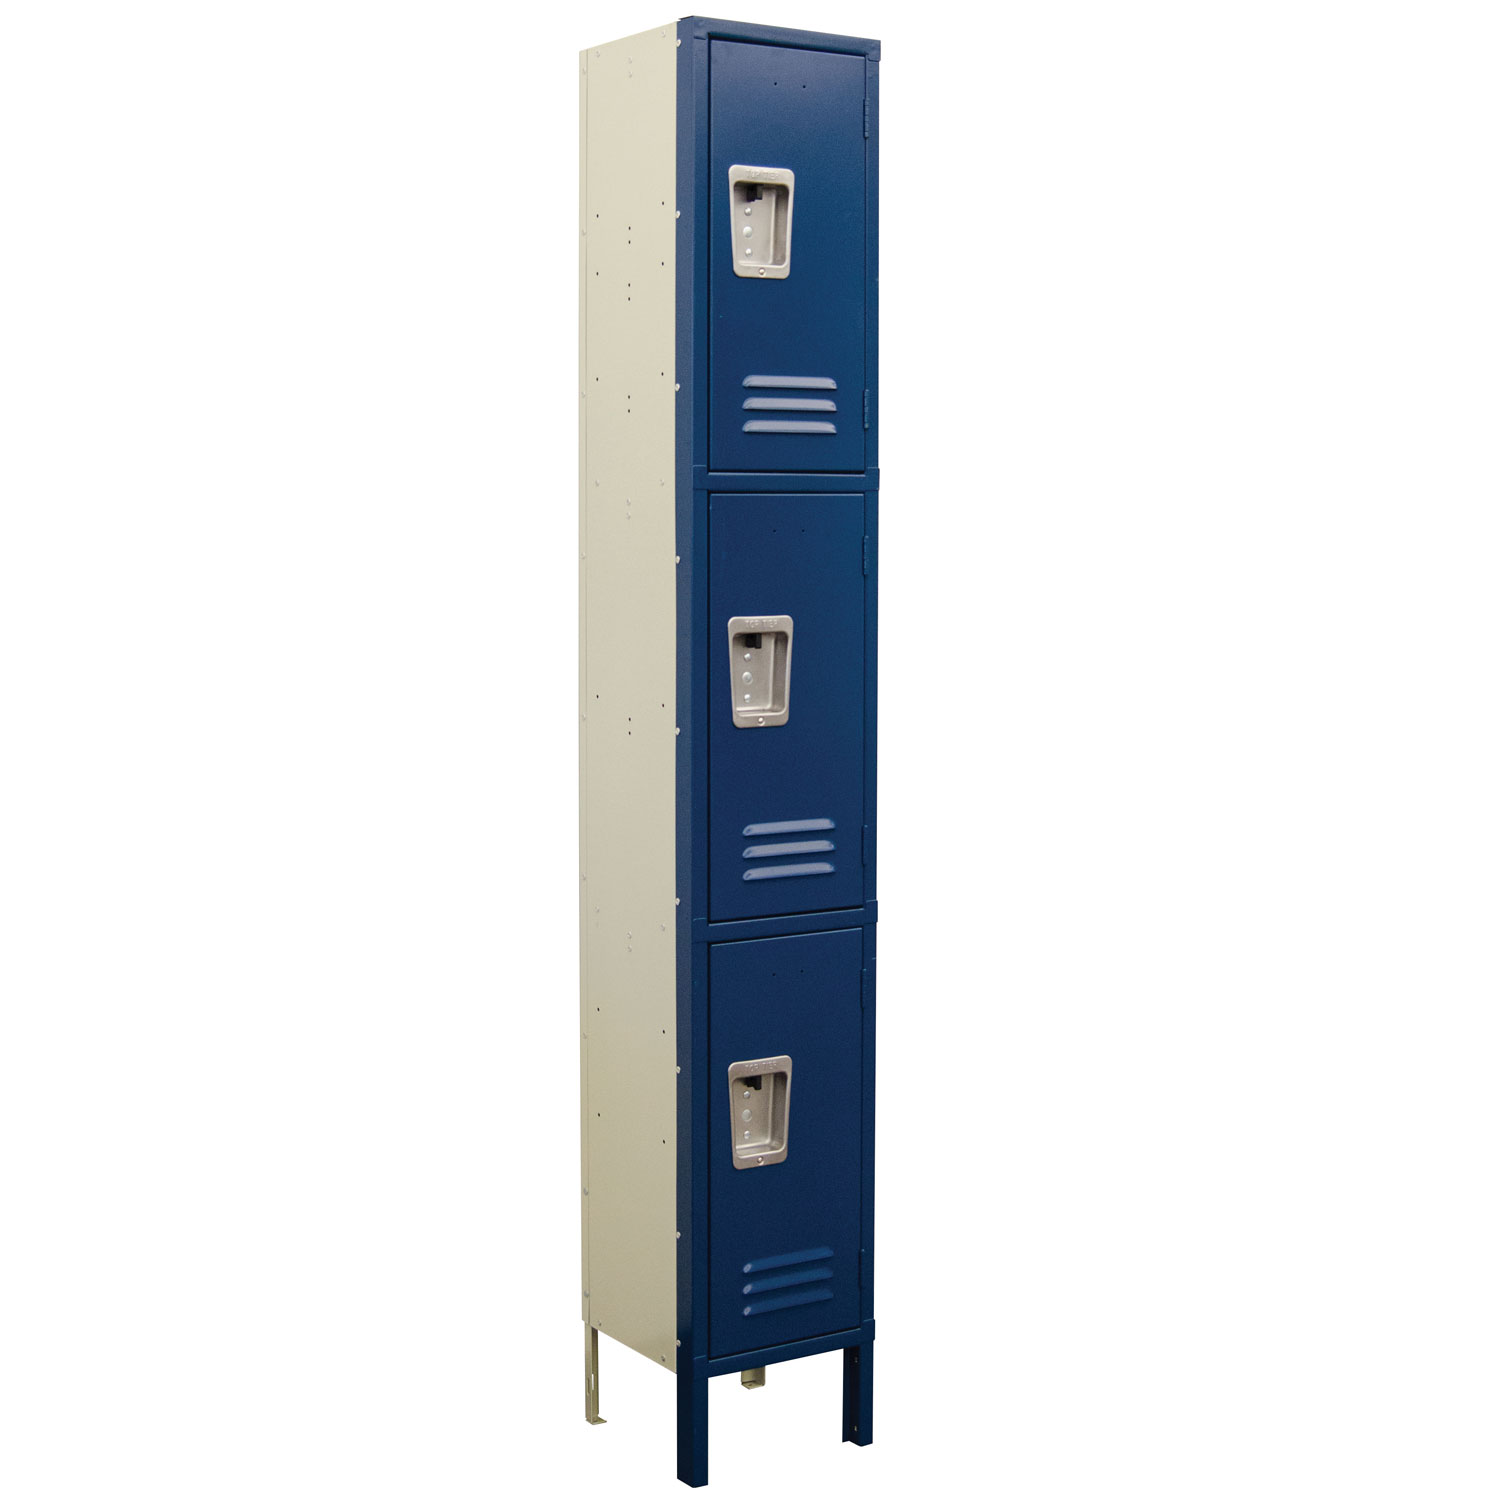 OfficeSource Corridor Lockers 3 Tier 1-Wide Locker